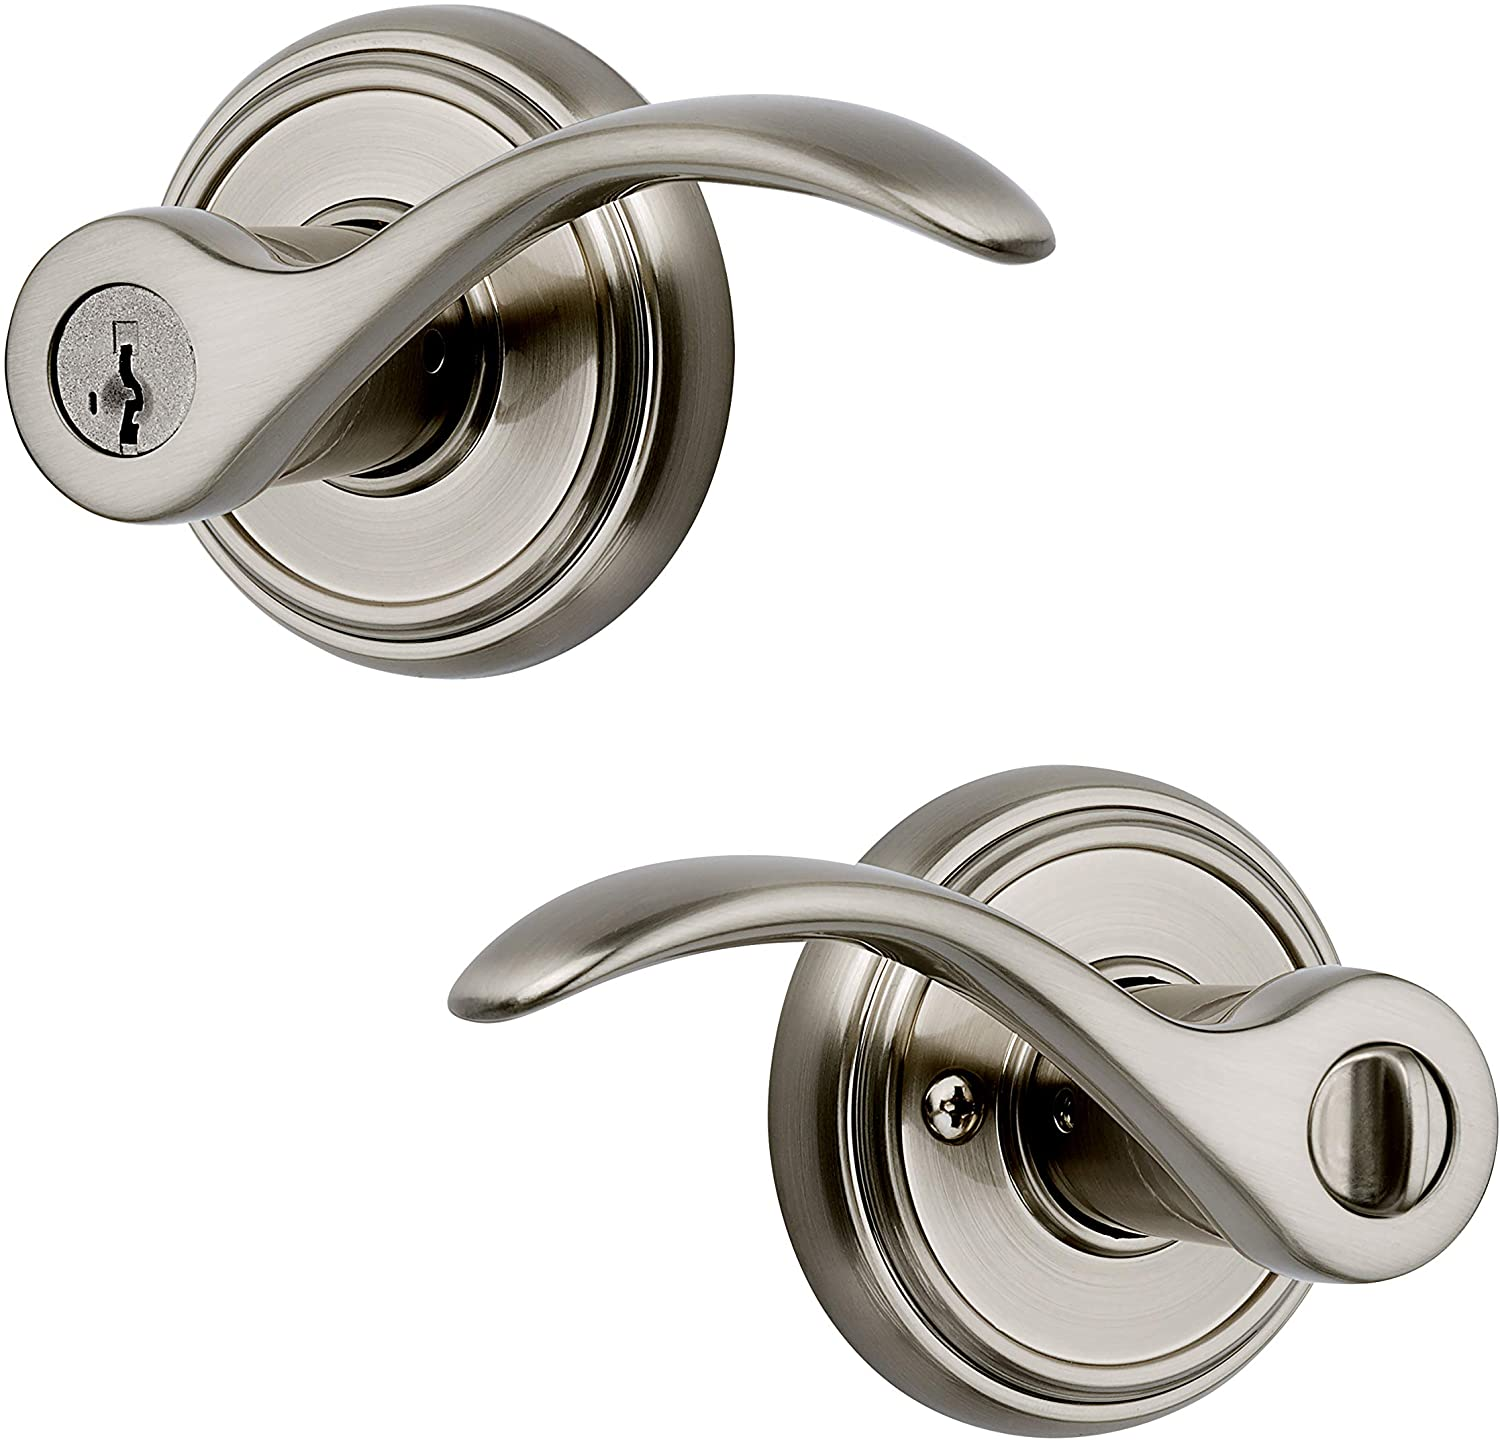 Baldwin Prestige Tobin Entry Lever featuring SmartKey in Satin Nickel